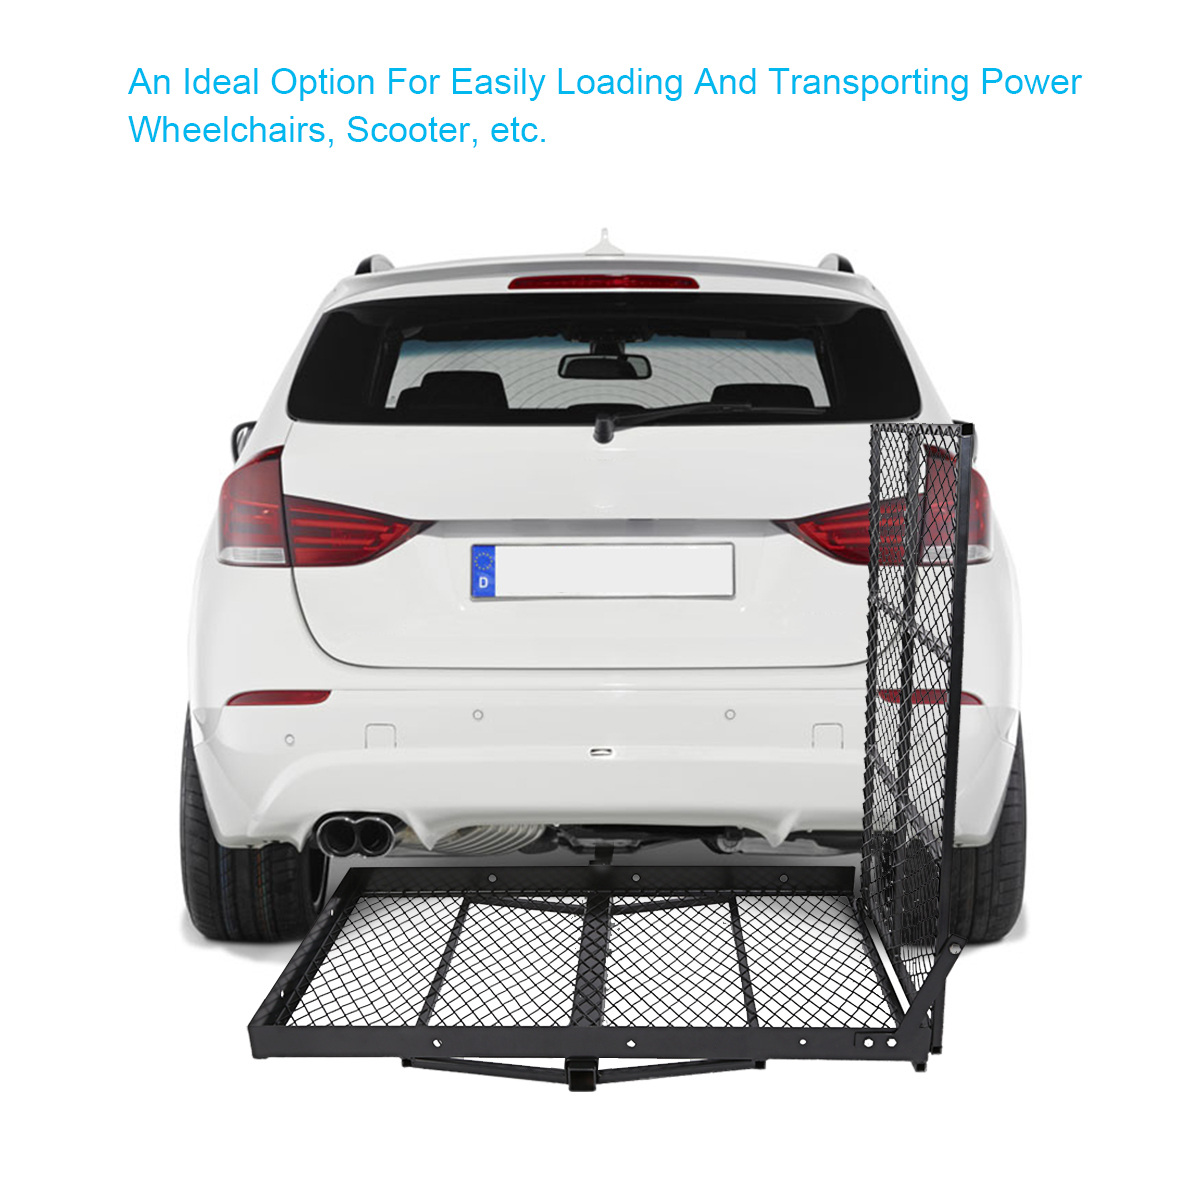 """48"""" x 28"""" Foldable Hitch Mounted Wheel Chair Carrier Mobi..."""